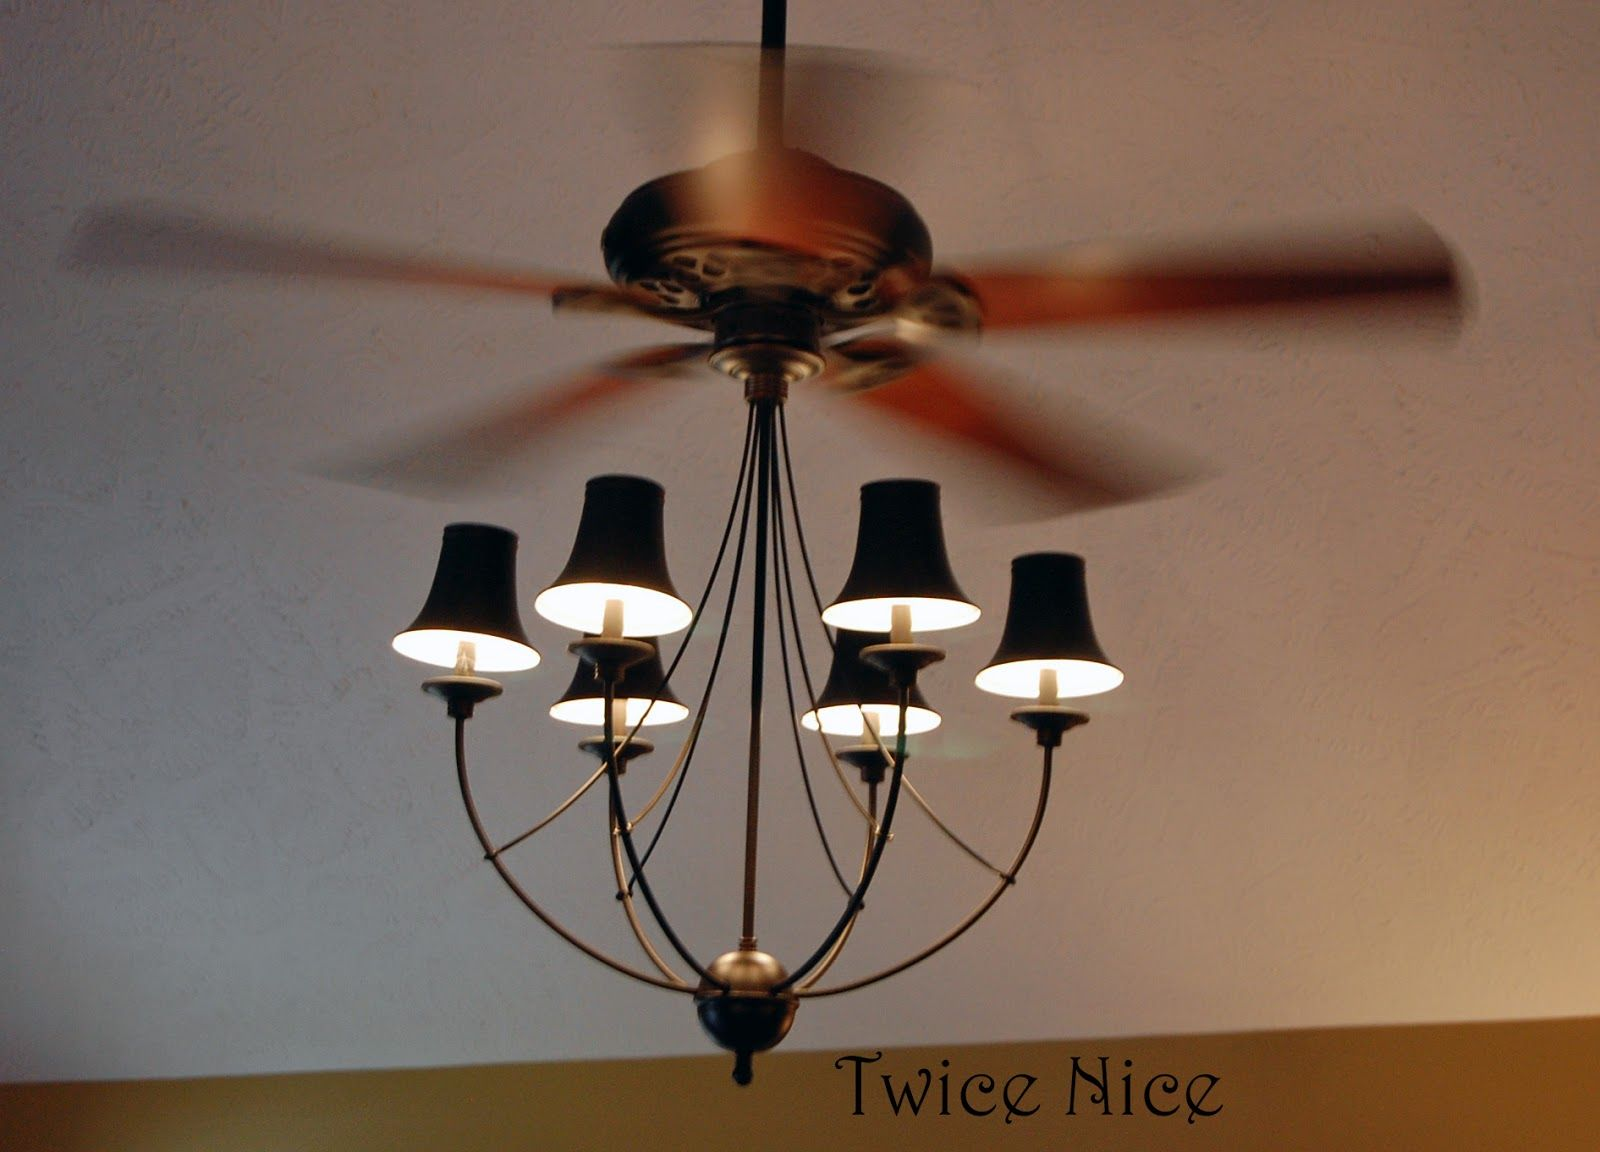 Decorative chandelier ceiling fan with lights modern ceiling decorative chandelier ceiling fan with lights modern ceiling design mozeypictures Image collections